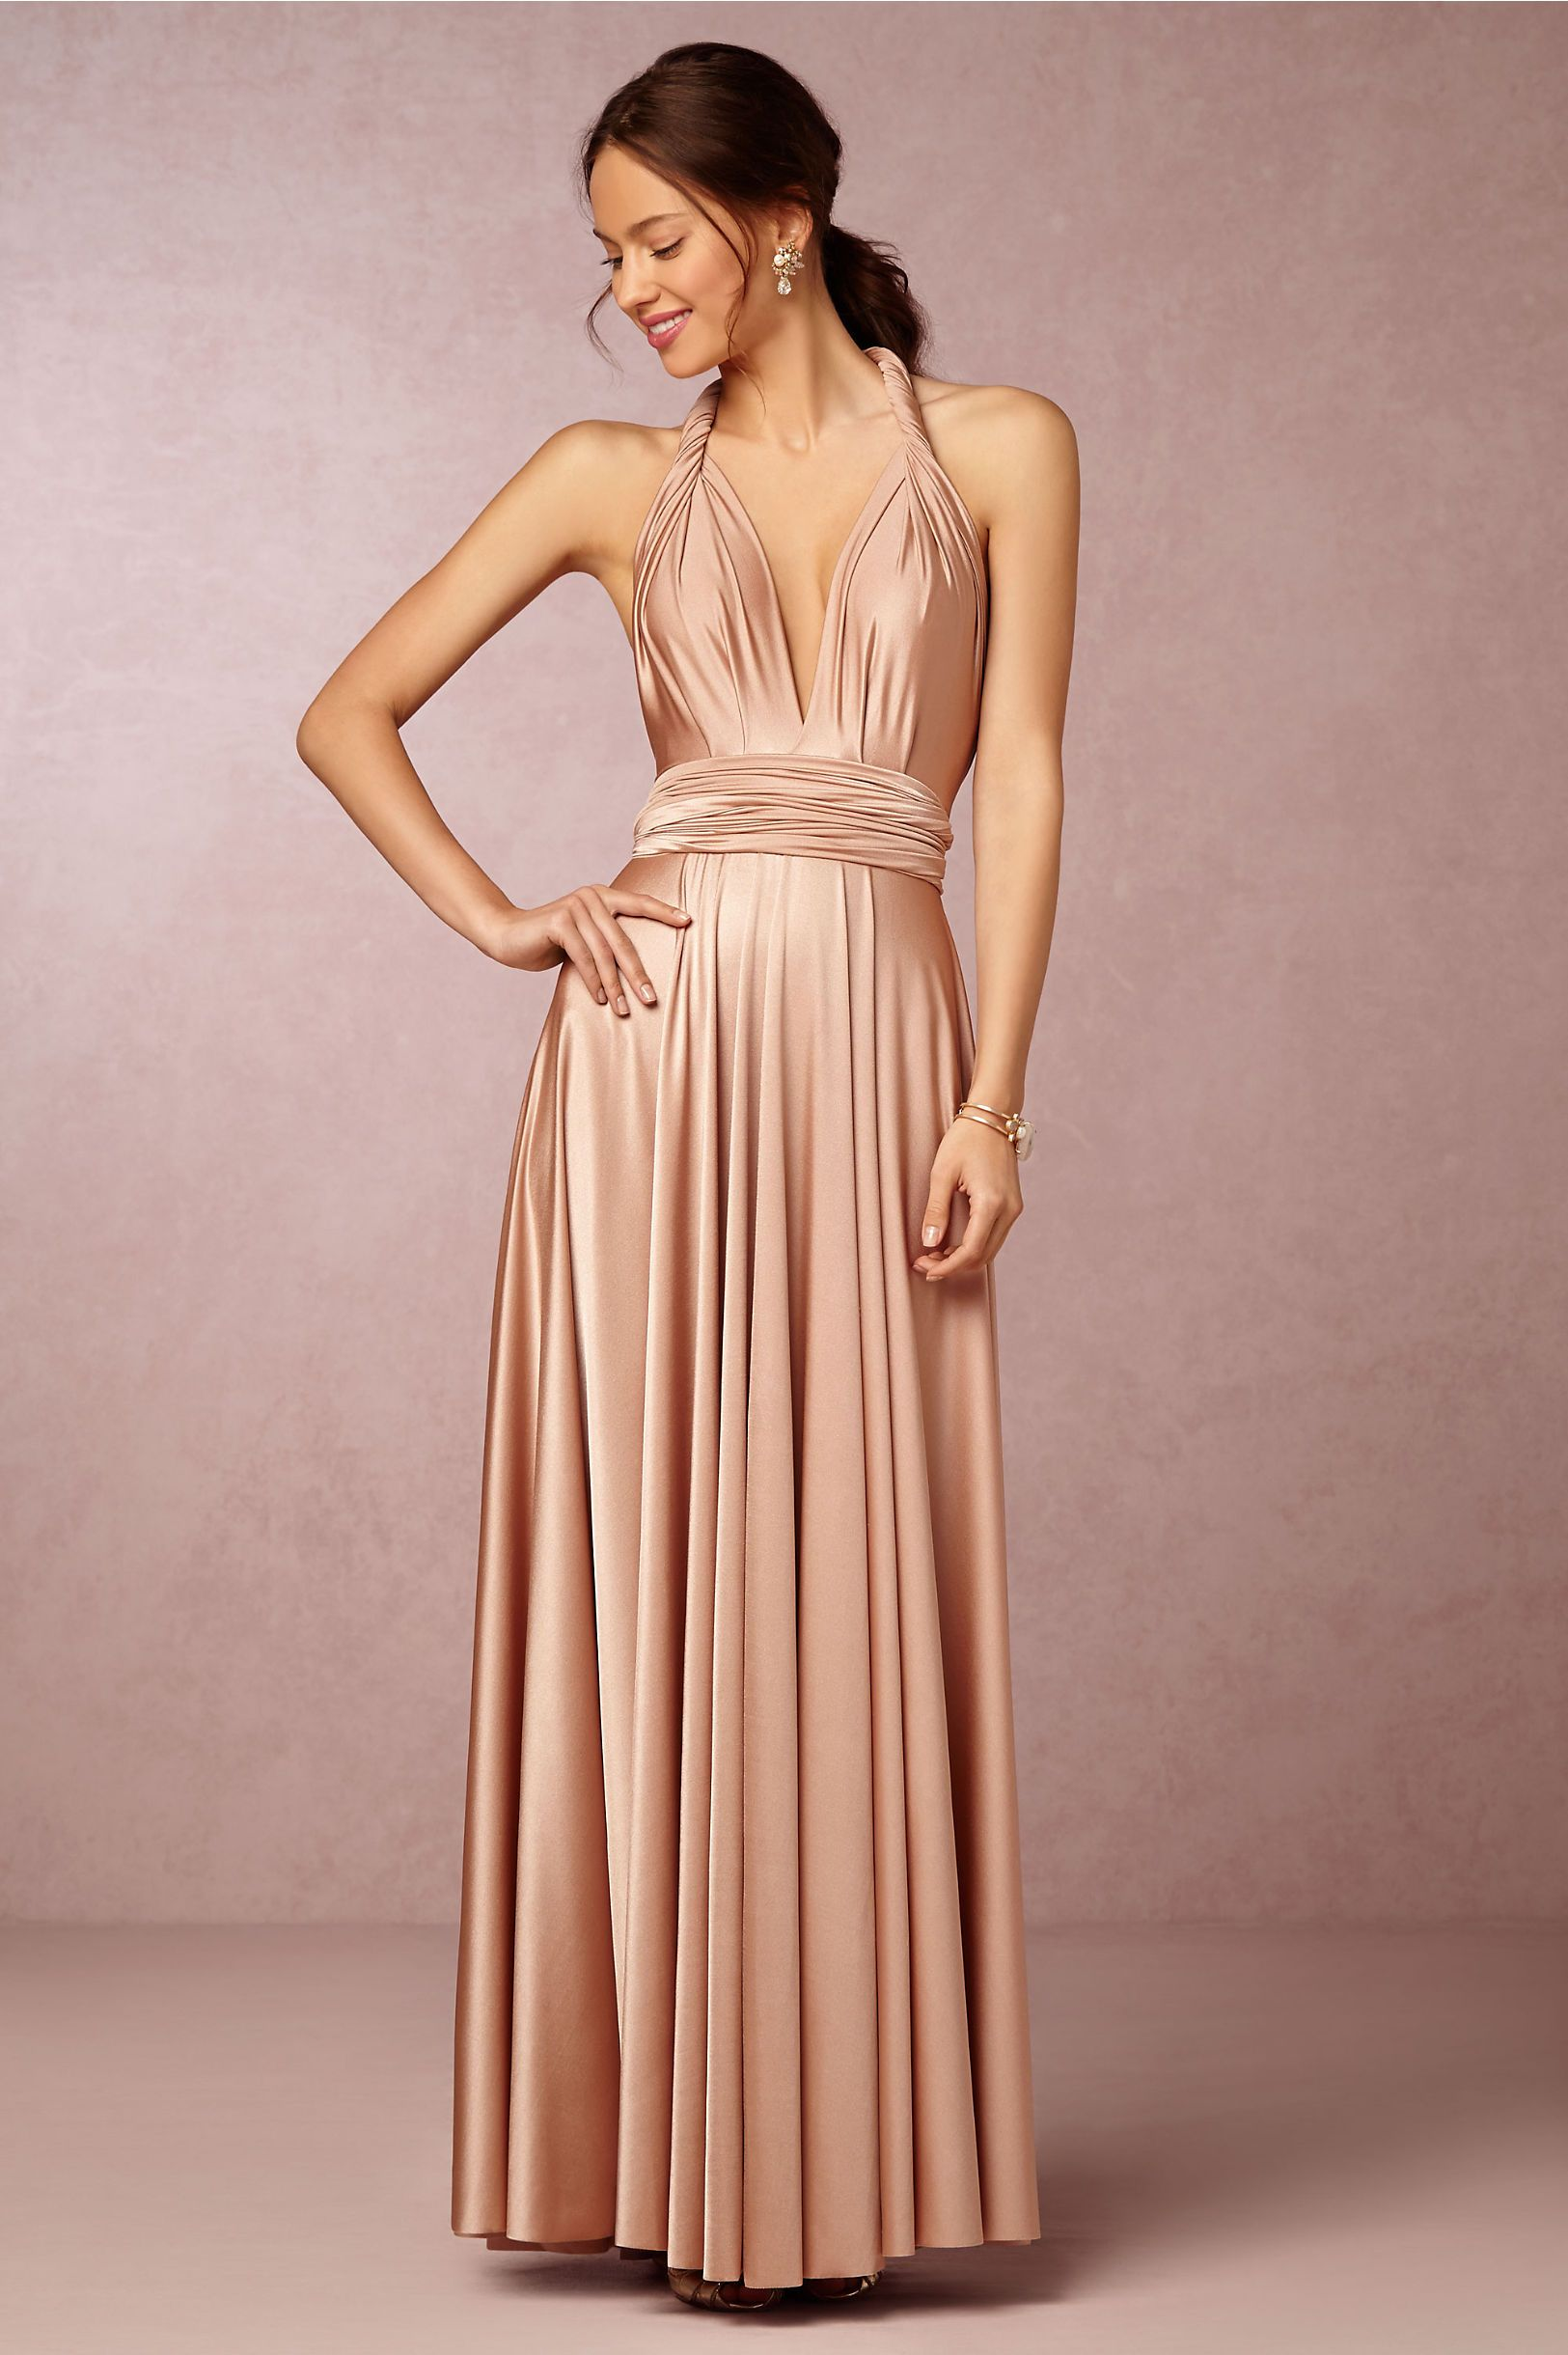 Bhldn ginger convertible maxi dress in dresses view all dresses at bhldn ginger convertible maxi dress in bridal party bridesmaid dresses ombrellifo Choice Image